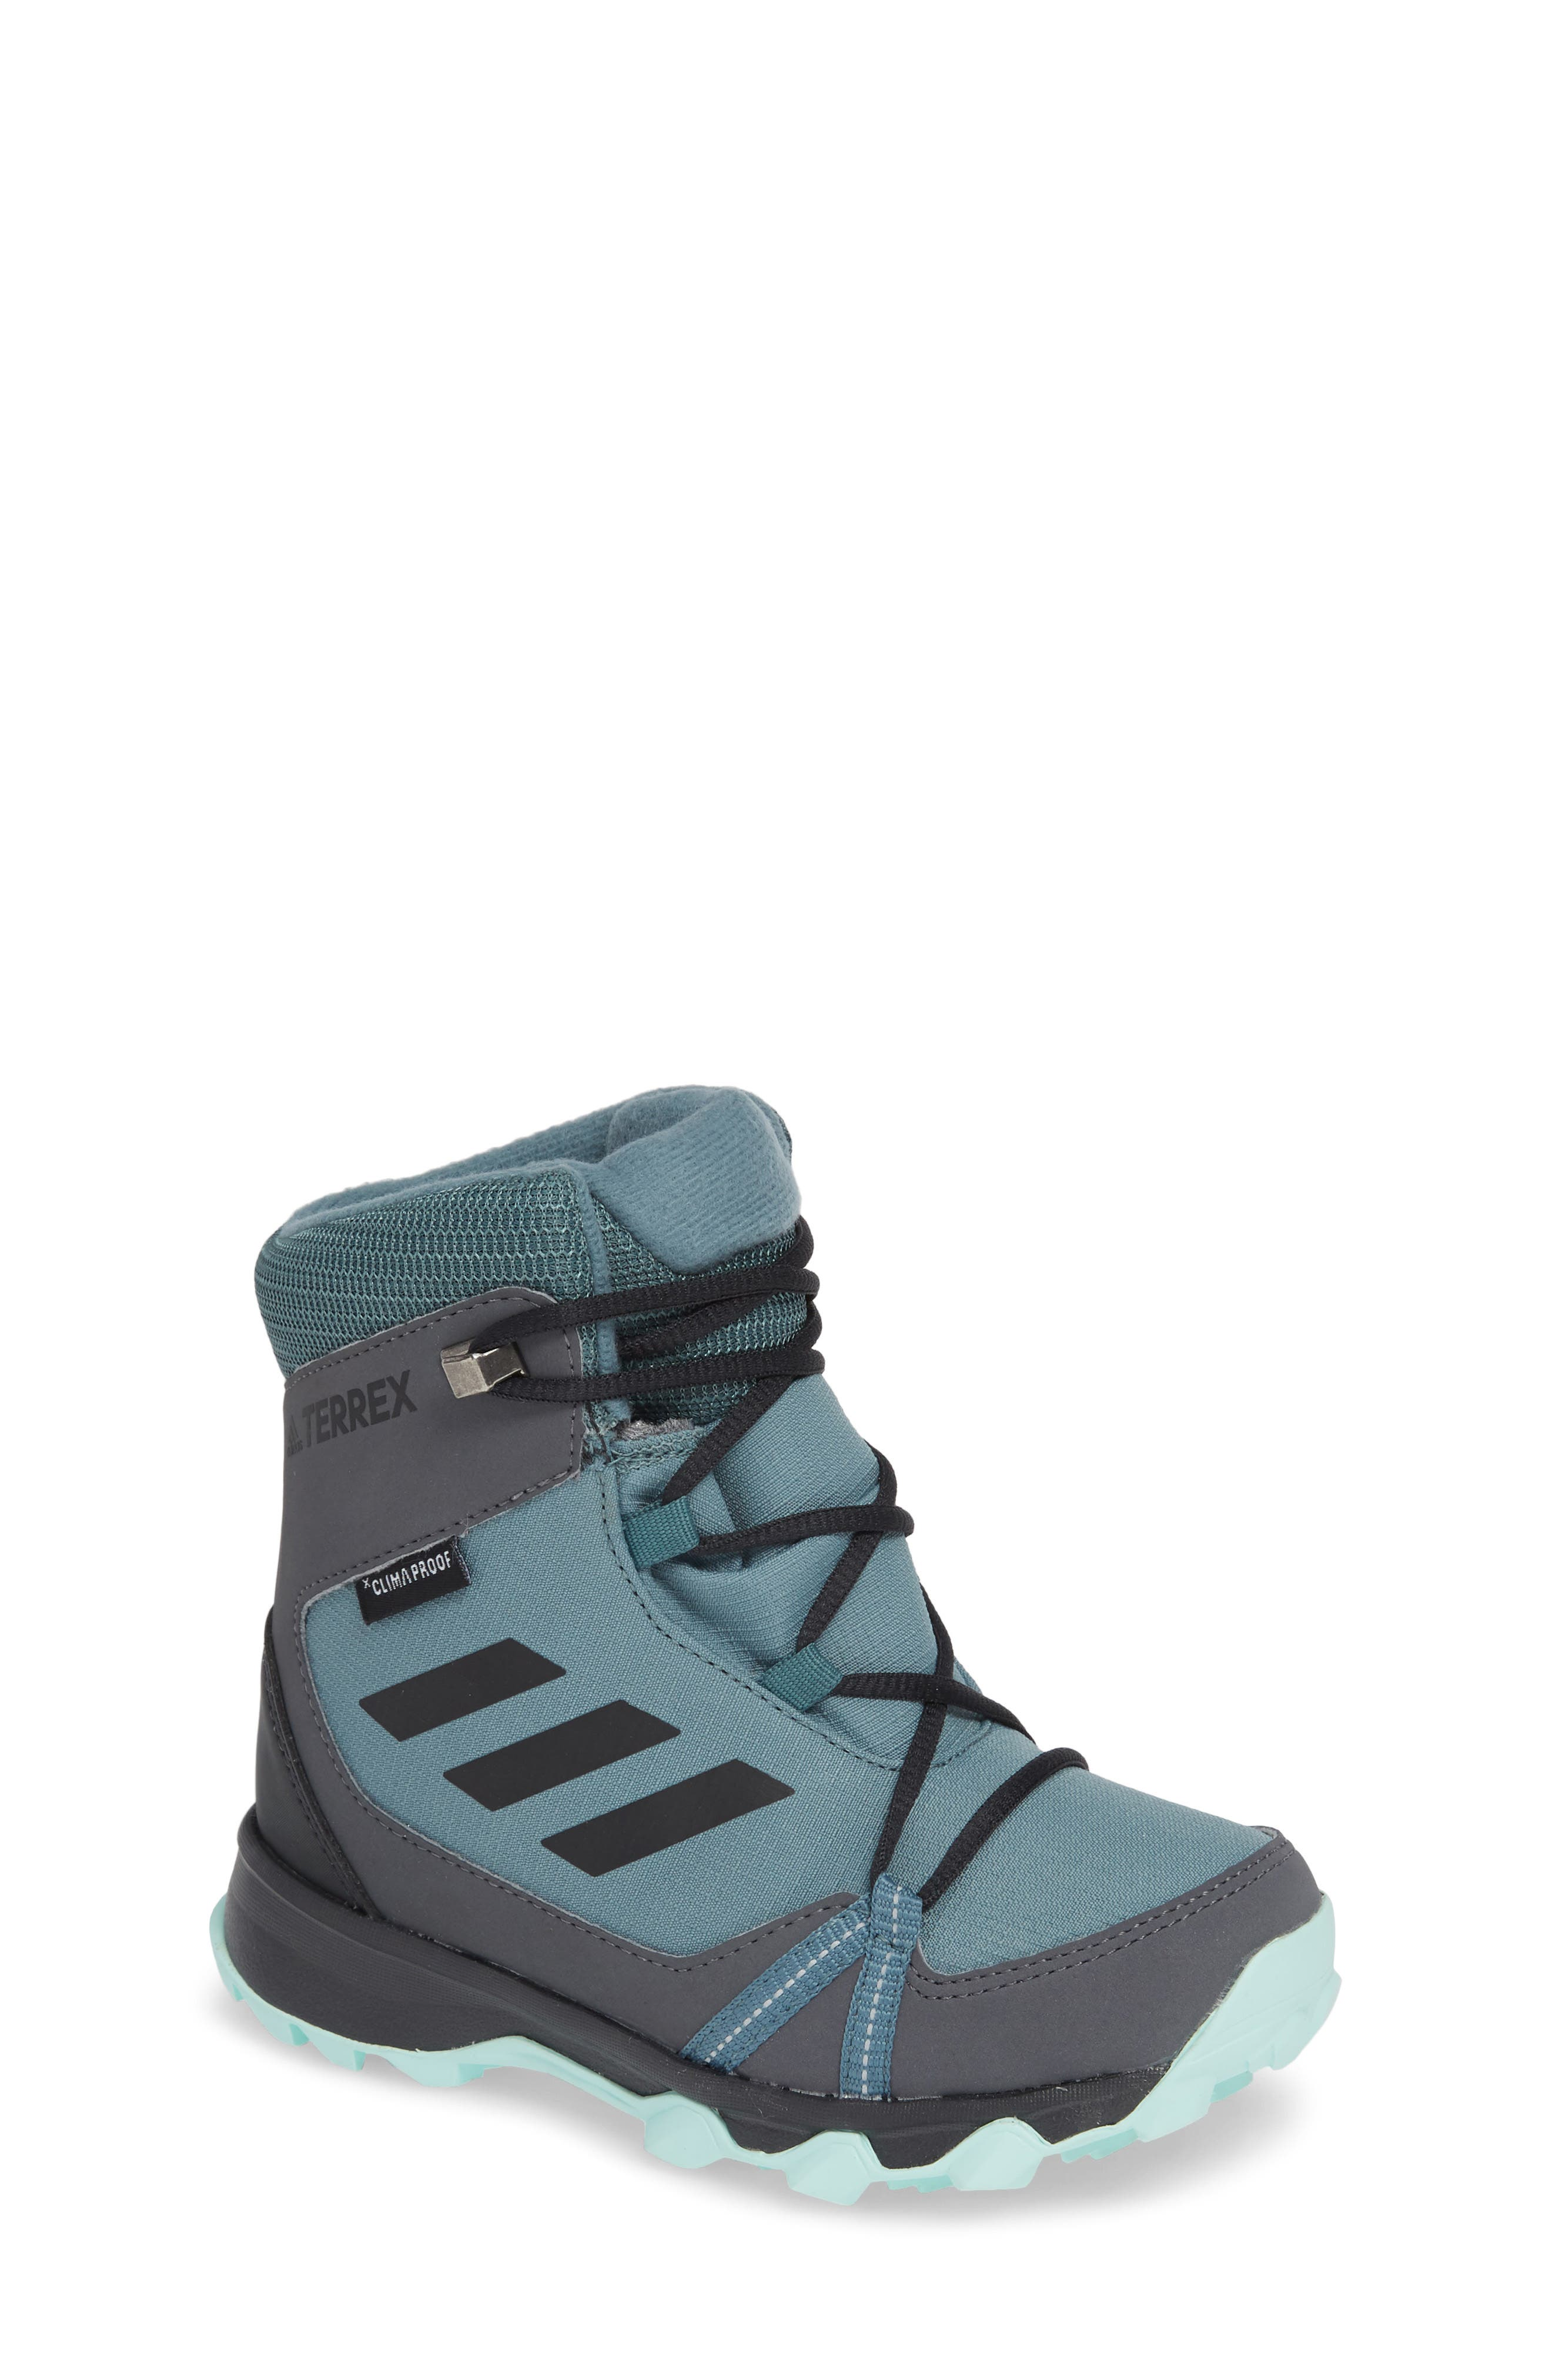 Terrex Snow CP CW Insulated Waterproof Sneaker Boot,                         Main,                         color, CLEAR MINT/ CARBON/ AQUA